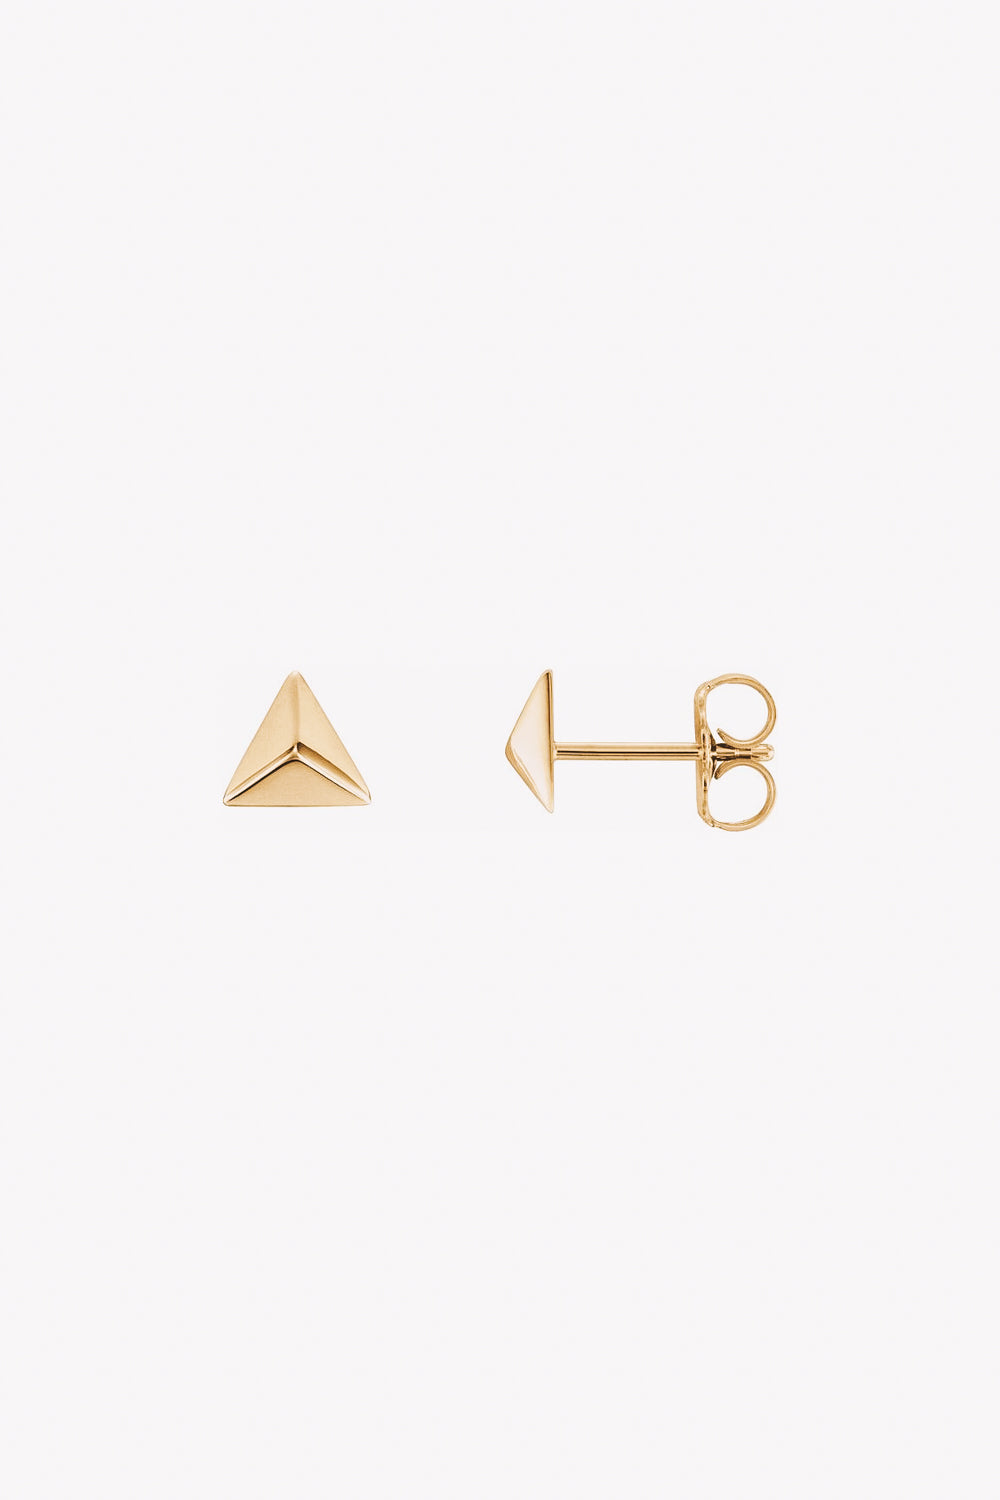 Pyramid Pair of Earrings | 14K Gold | Janna Conner